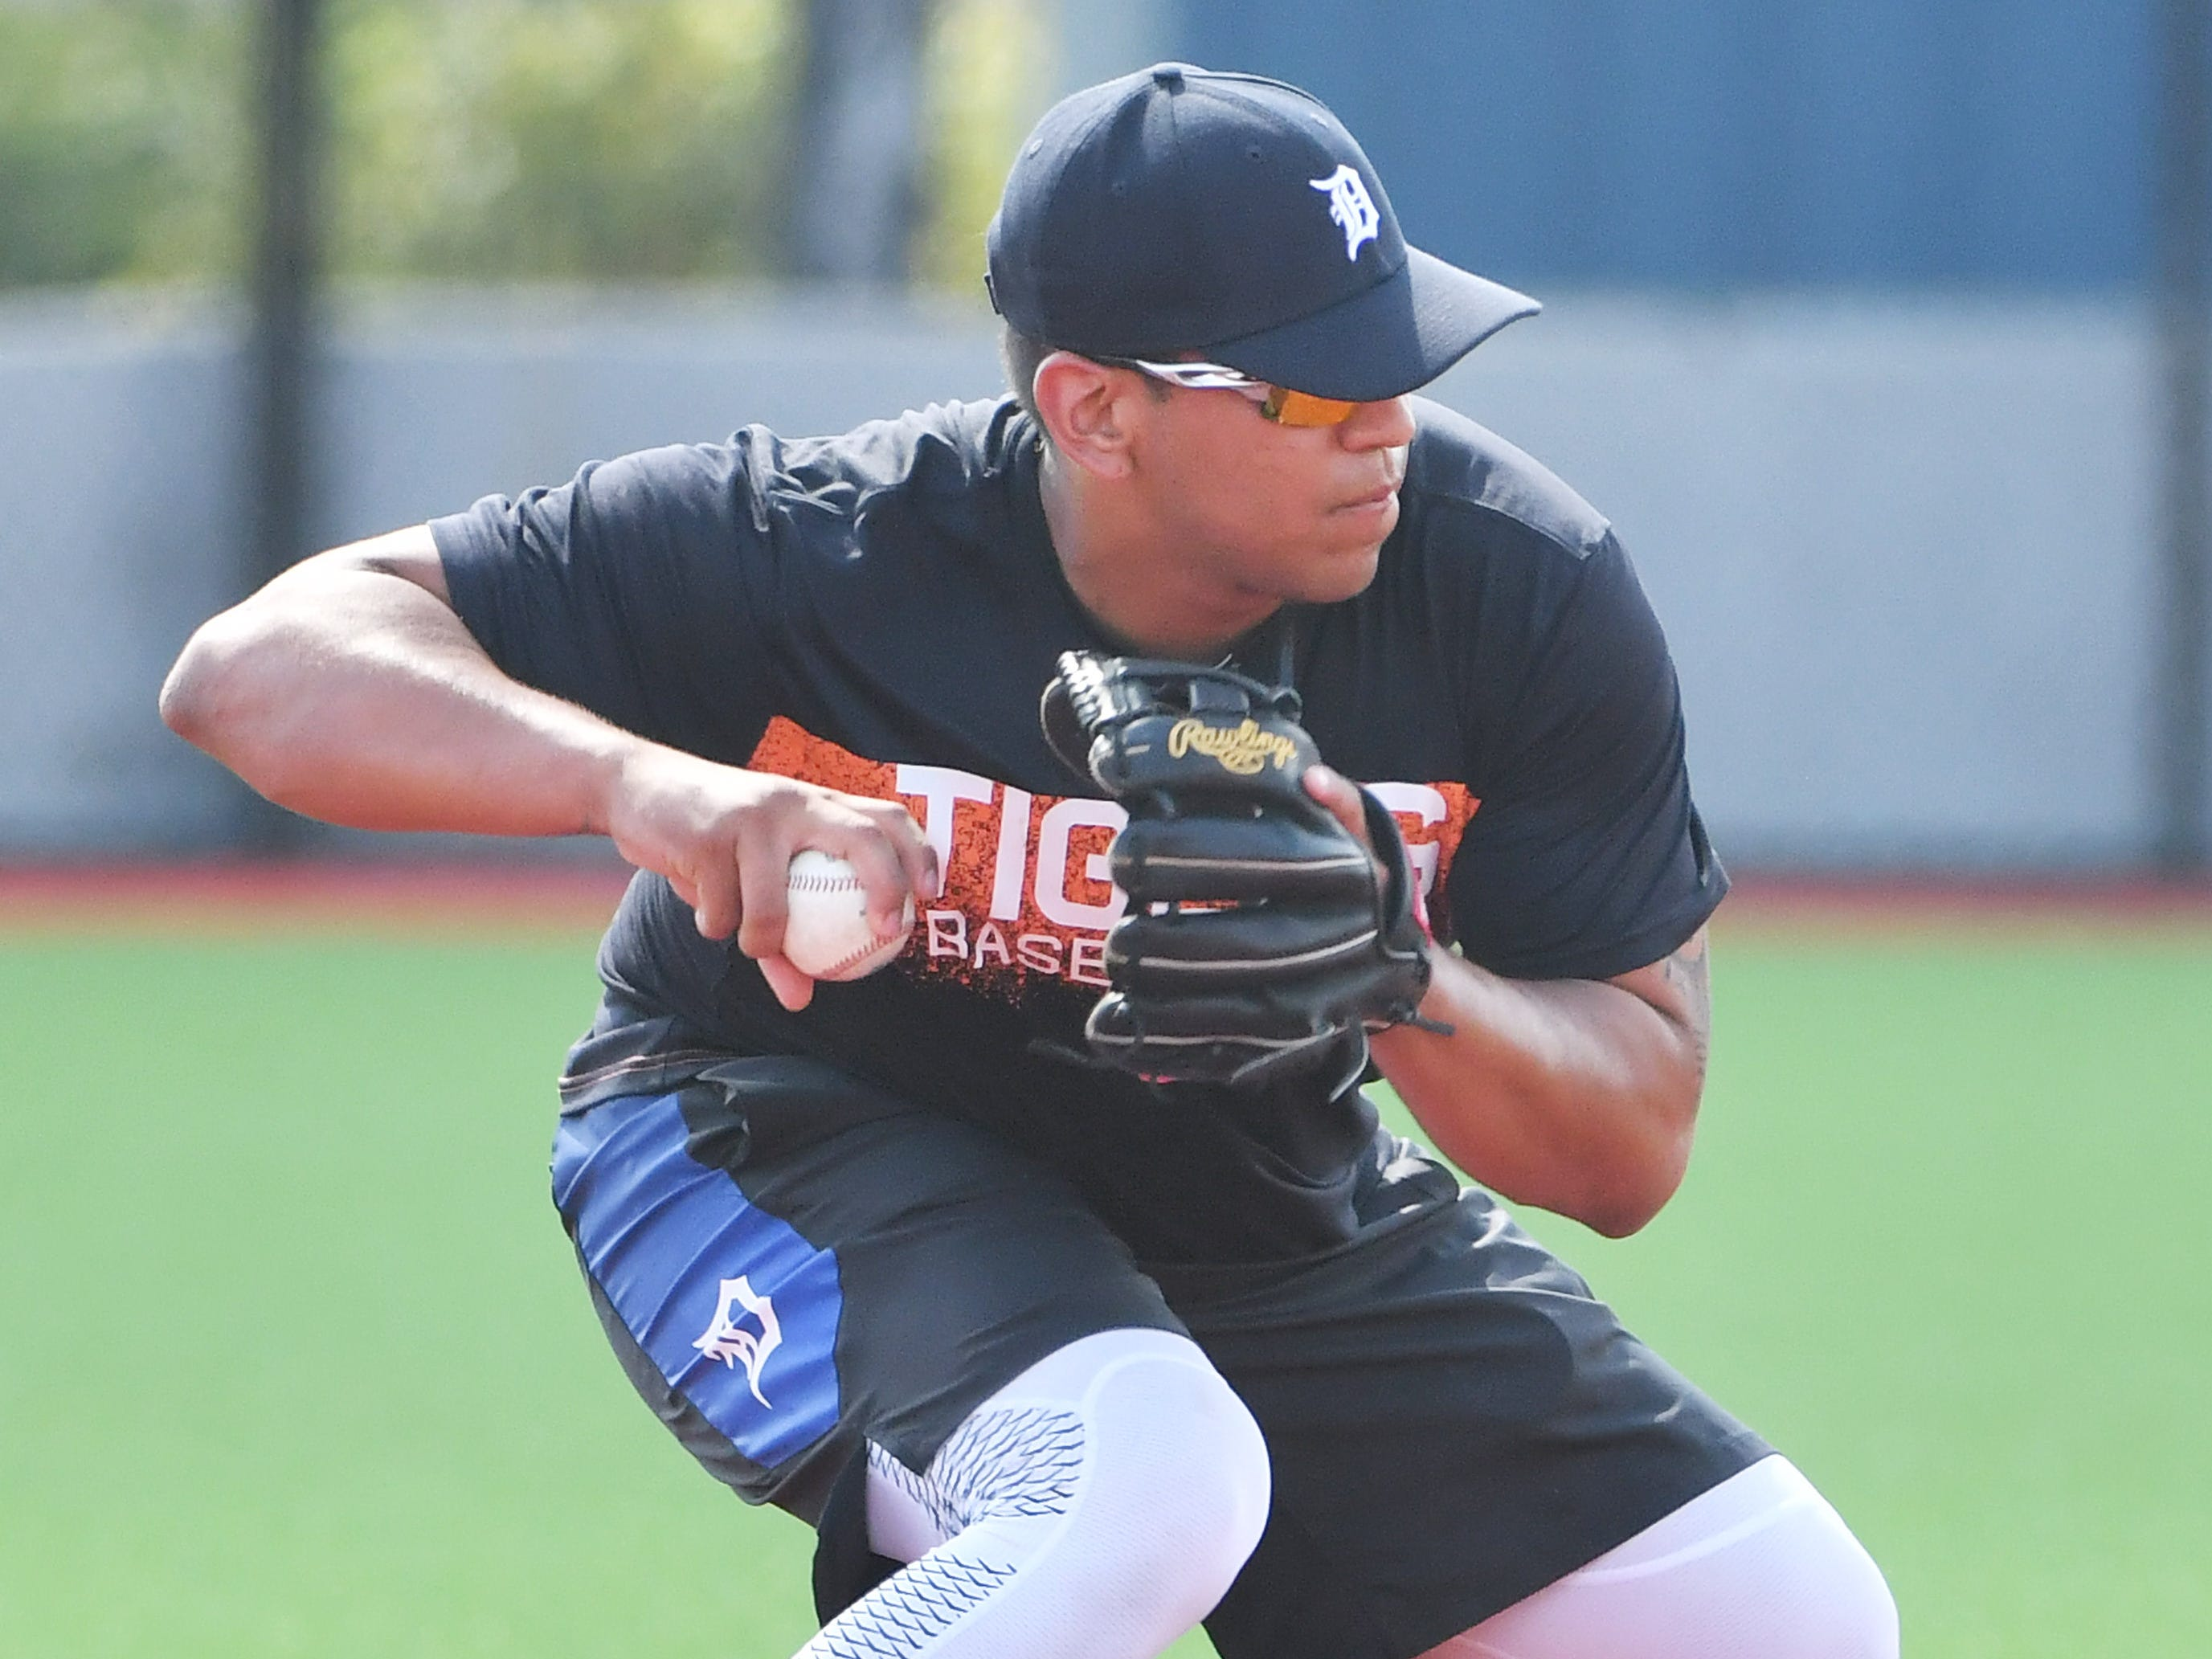 3. Isaac Paredes, IF, 19, 5-11, 225: Yes, 19 years old -- for a few more days, anyway. This is what he did in 39 games last year at Double A: .321 batting average, .406 on-base, .864 slugging. He has a right-handed swing that as early as next season could be a trigger to the Tigers' reconstituted lineup. He probably is headed for third base unless he drops 30-40 pounds, which would be one mean feat. The bat will find its way into the lineup's mid-order, wherever Paredes plays.